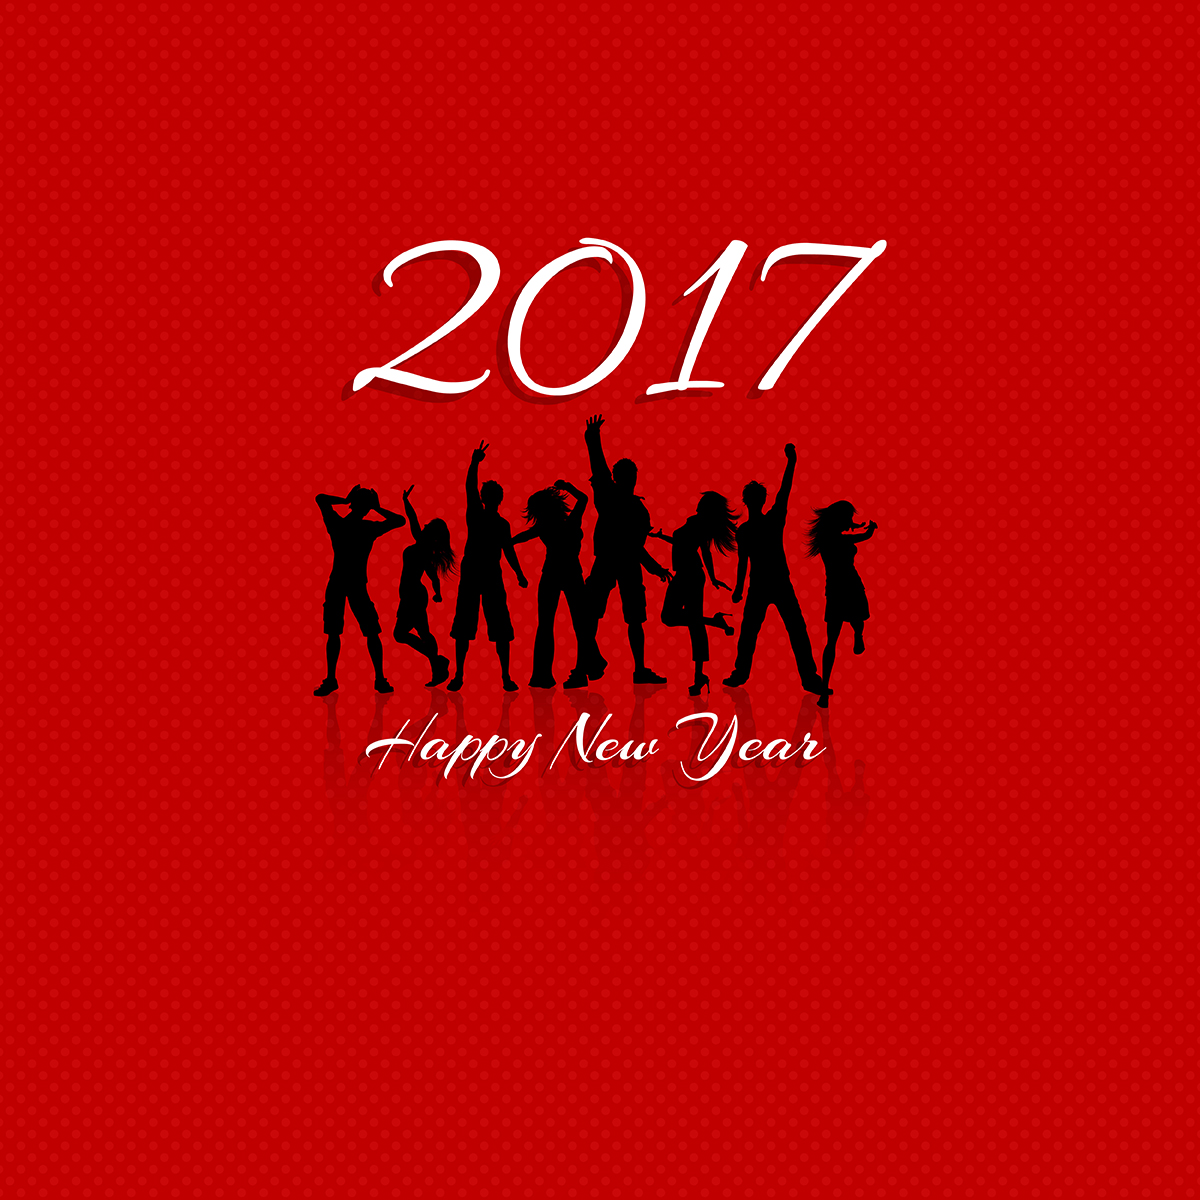 Happy New Year 2017 Wishes For Wife